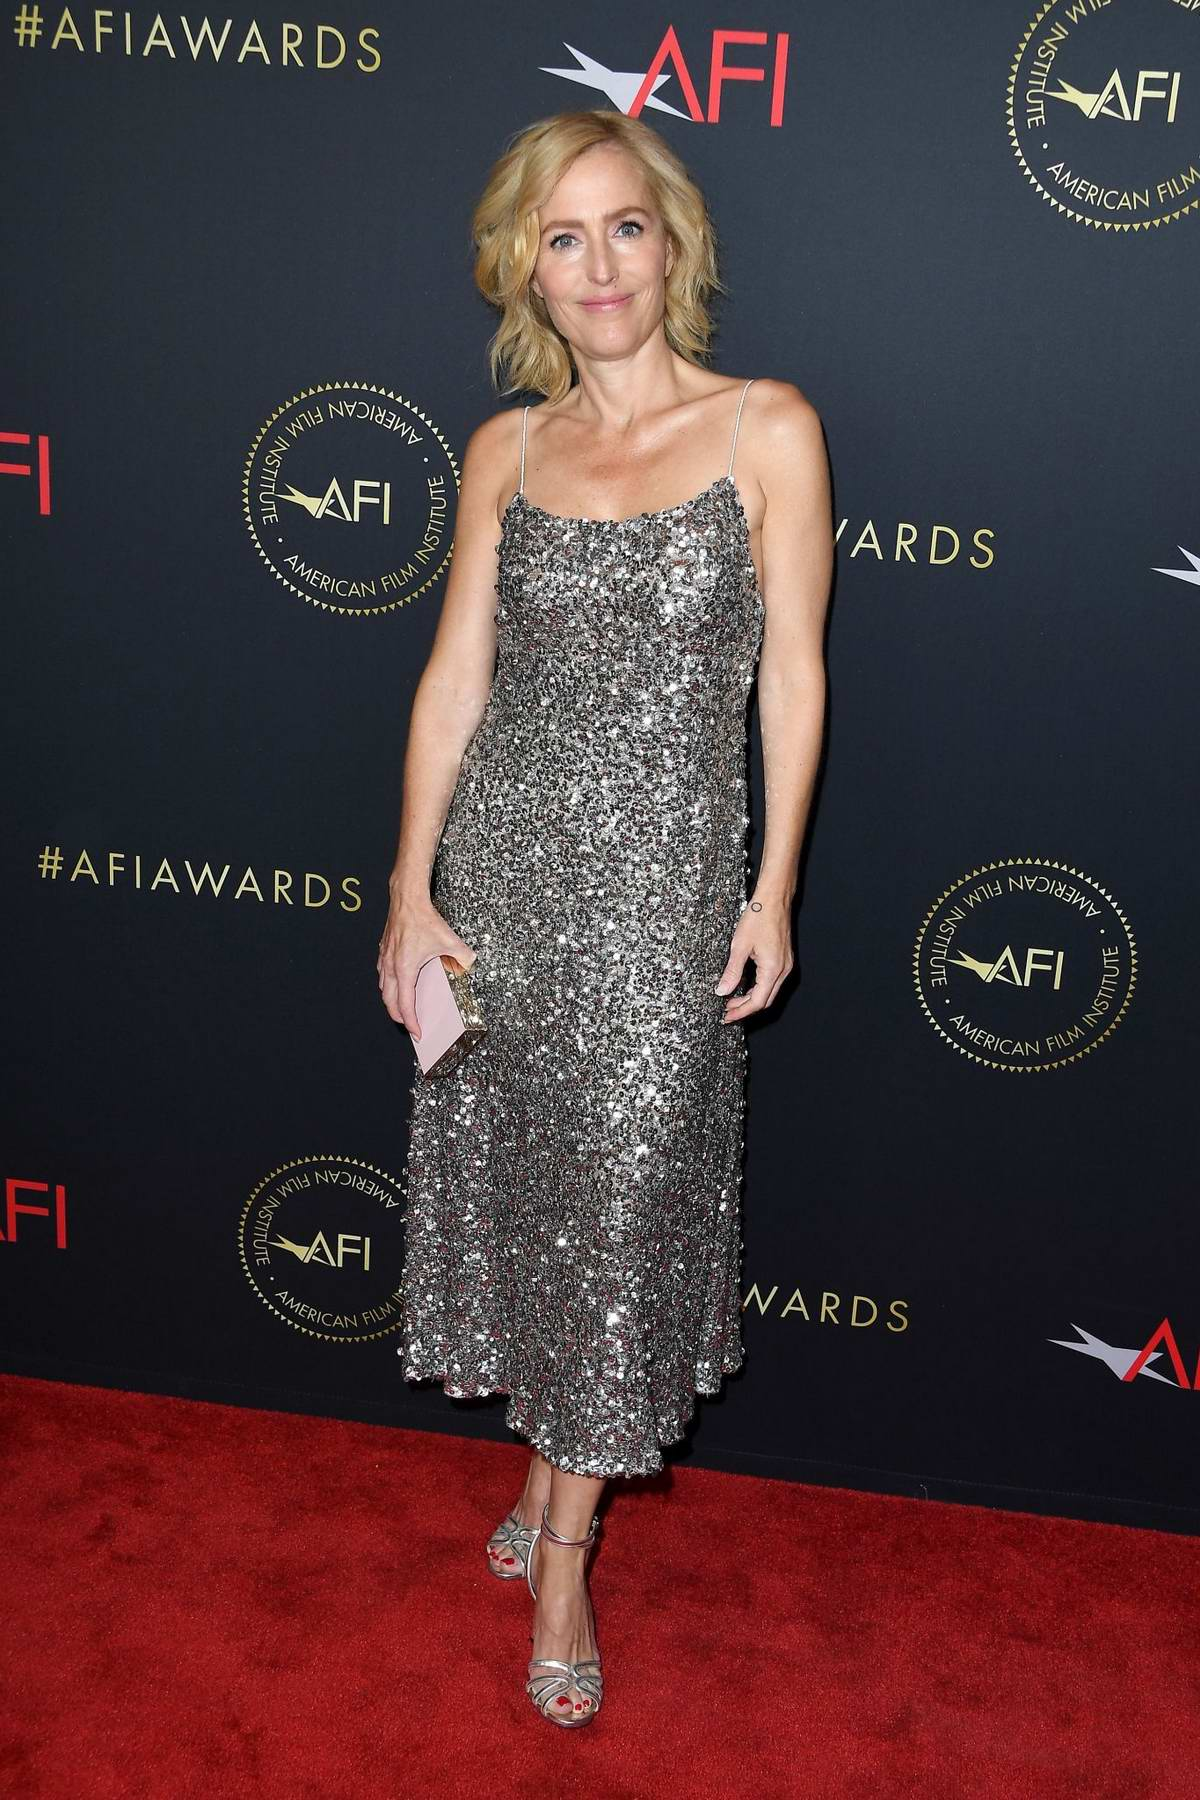 Gillian Anderson attends the 20th Annual AFI Awards at Four Seasons Hotel Los Angeles in Beverly Hills, California